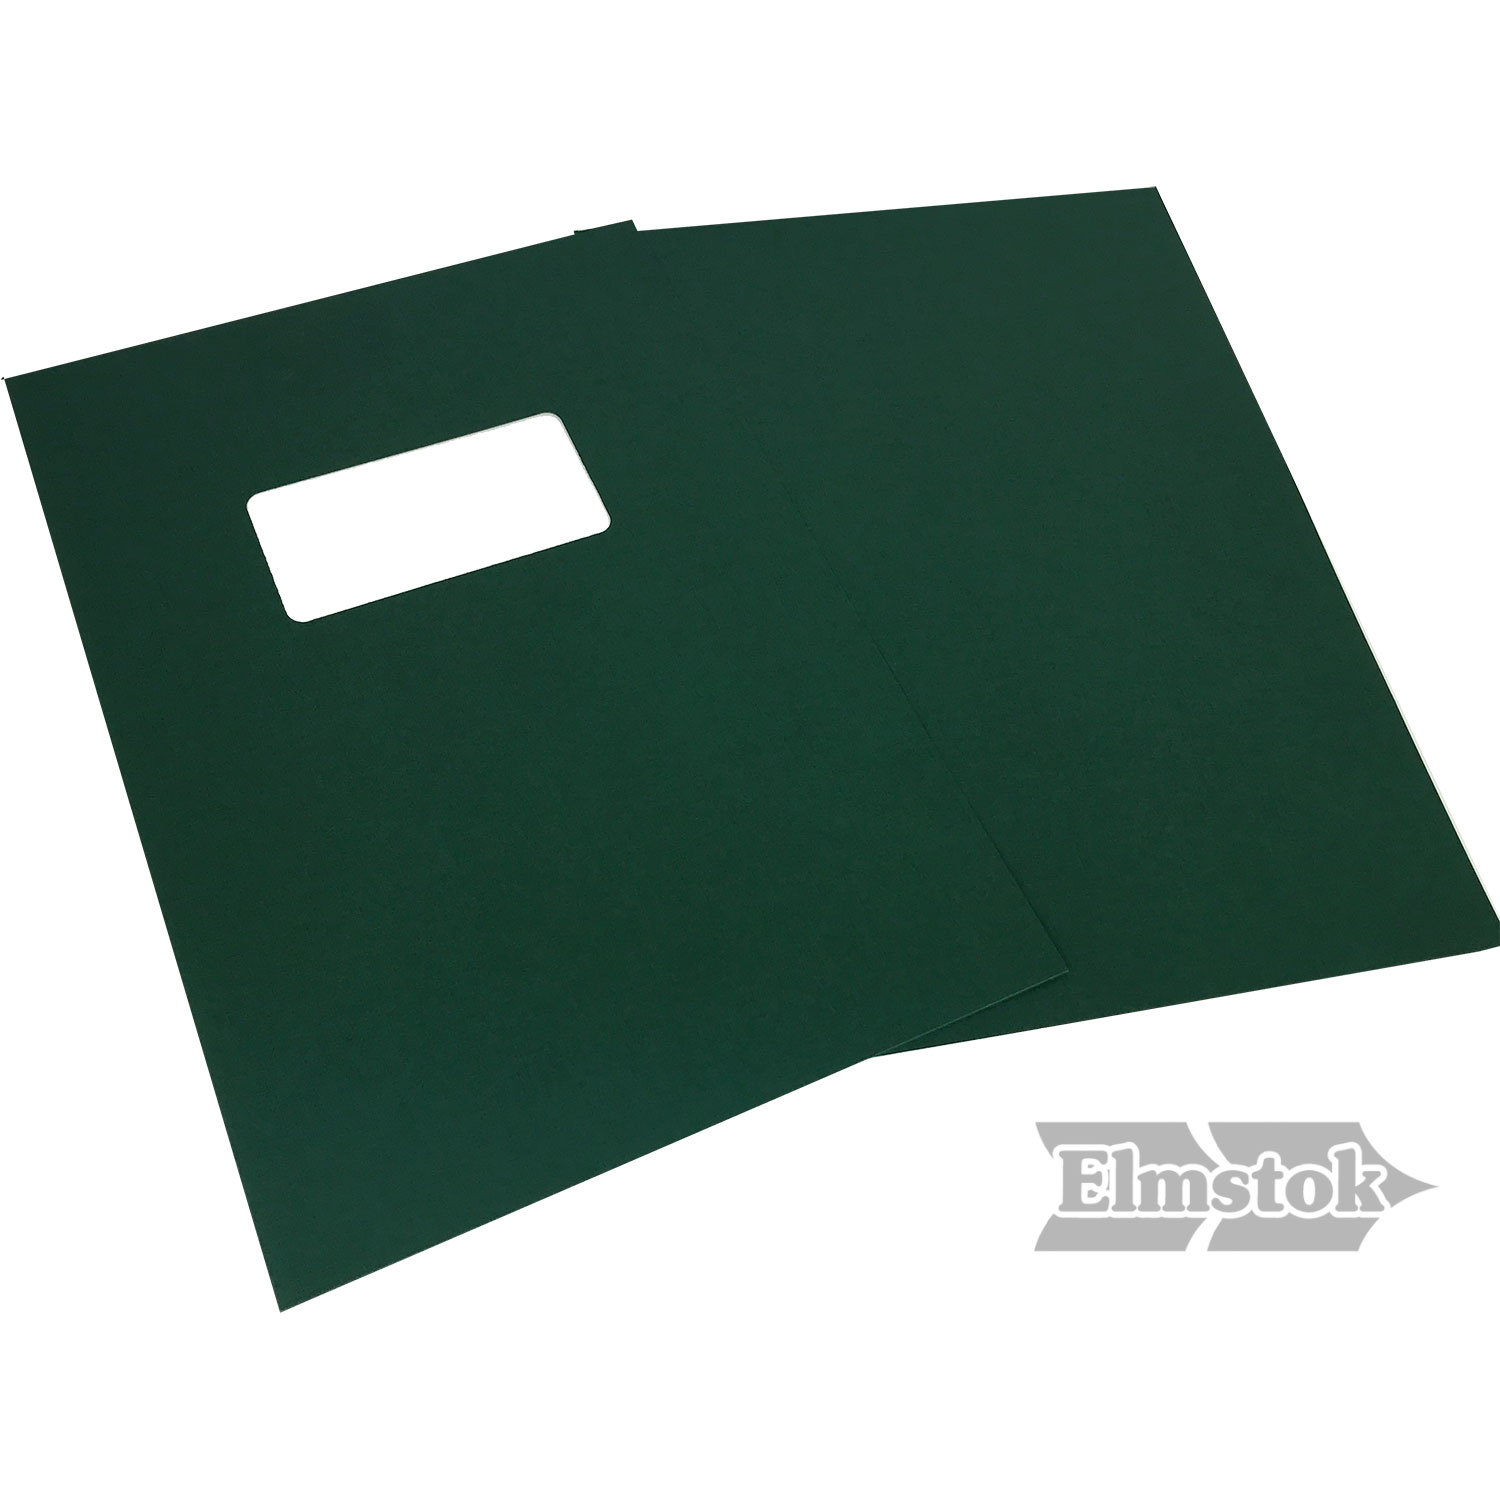 Green Linen A4 Binding Covers - Window Cut-Out (500)